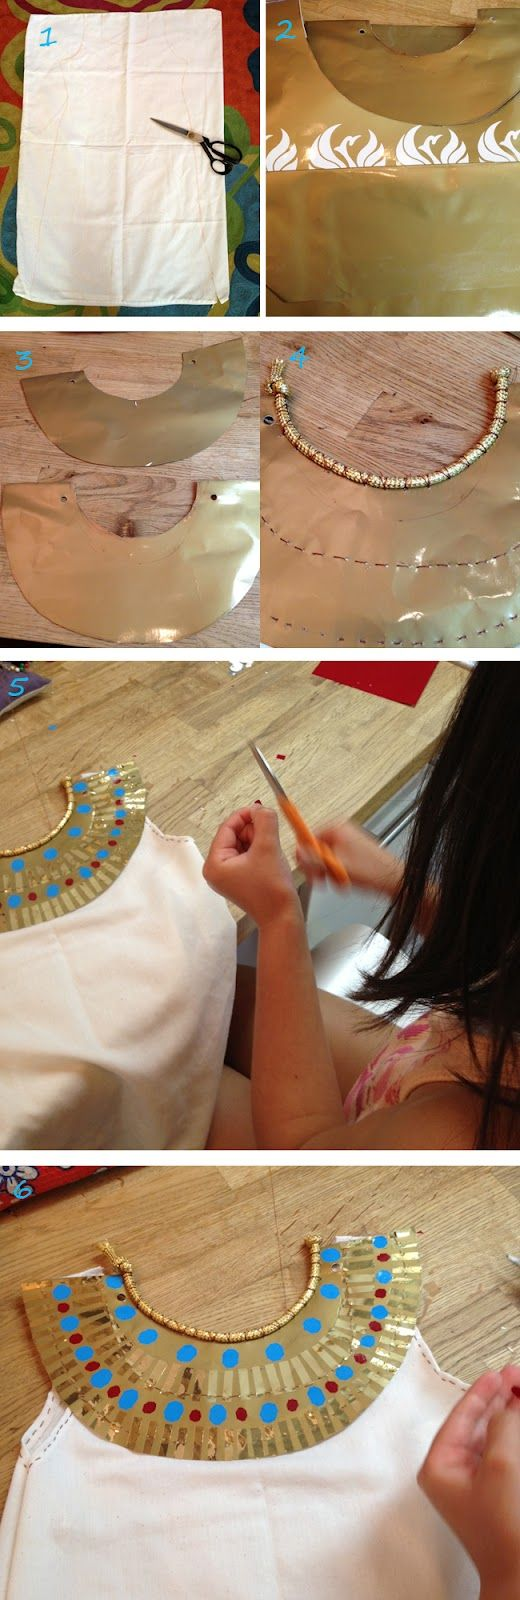 Lena Sekine: Making of Cleopatra costume Más Más